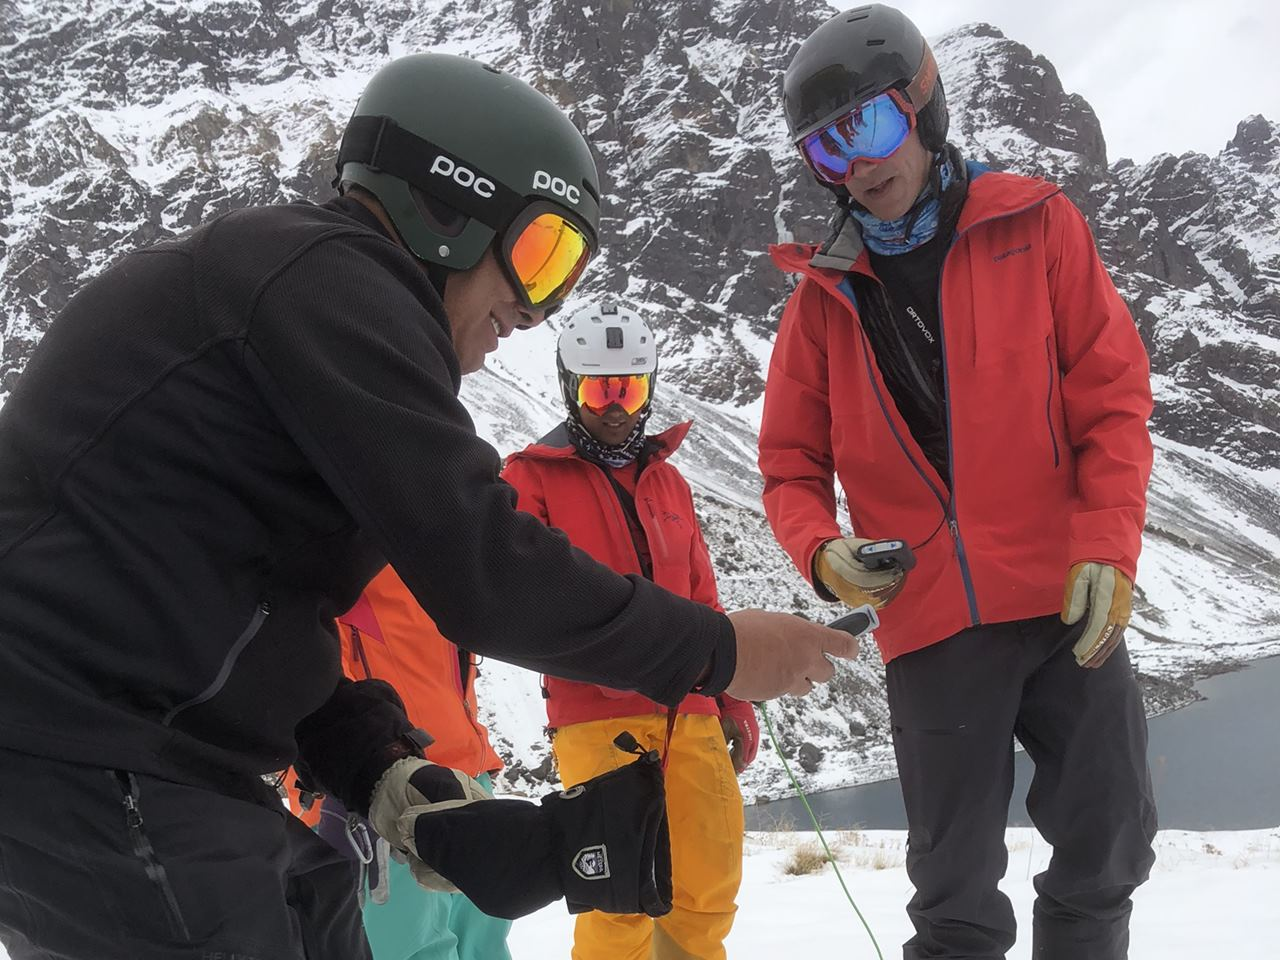 Avalanche Safety Course by Ski Academy in Andermatt; better safe than sorry; reduce your risk; play it safe; off-piste skiing; freeriding; powder skiing; go with a pro; know your risk; mountain guides in Andermatt; mountain safety course;